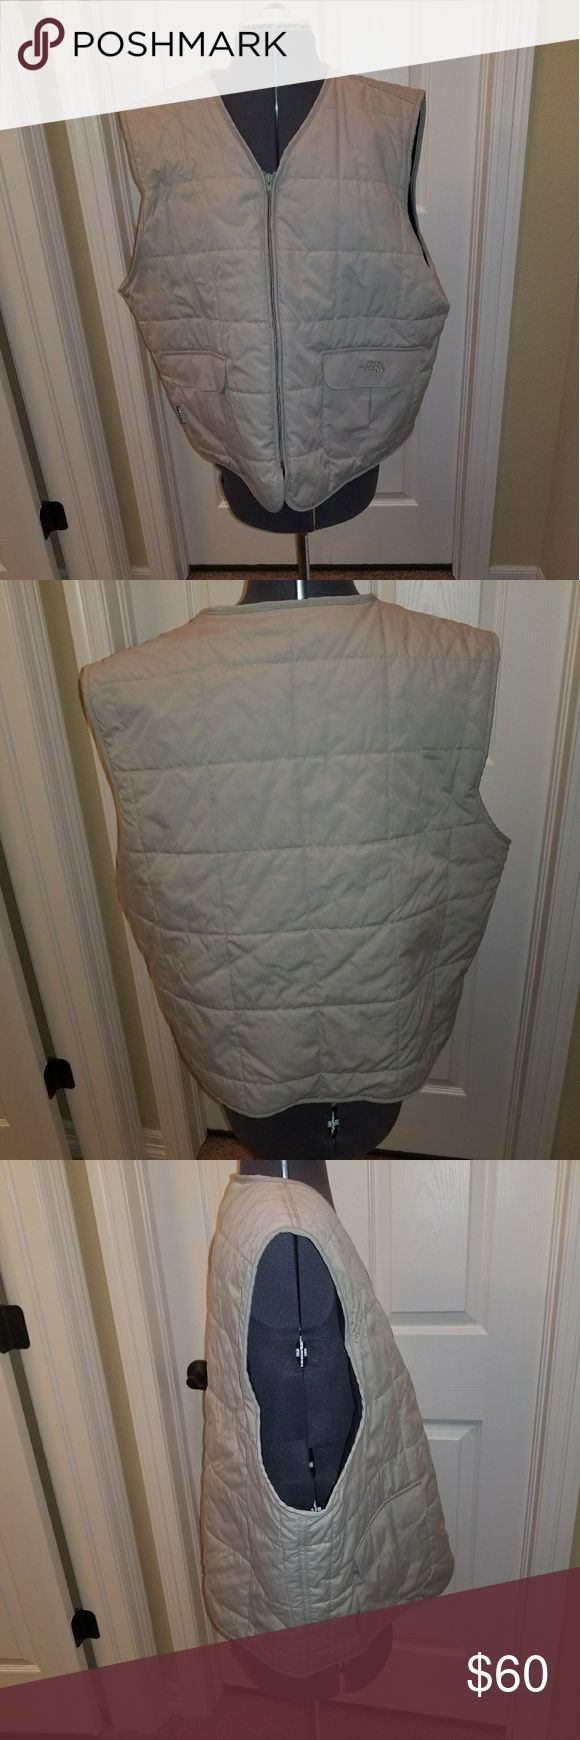 North Face quilted vest Mens tan Pre Owned North Face Mens quilted vest.   I think that this was a XL but the size tag was removed. If measurements are needed message me  No tears, or stains. Other than missing tag it was never worn and was just in the closet  - 2 front pockets - zip front North Face Jackets & Coats Vests